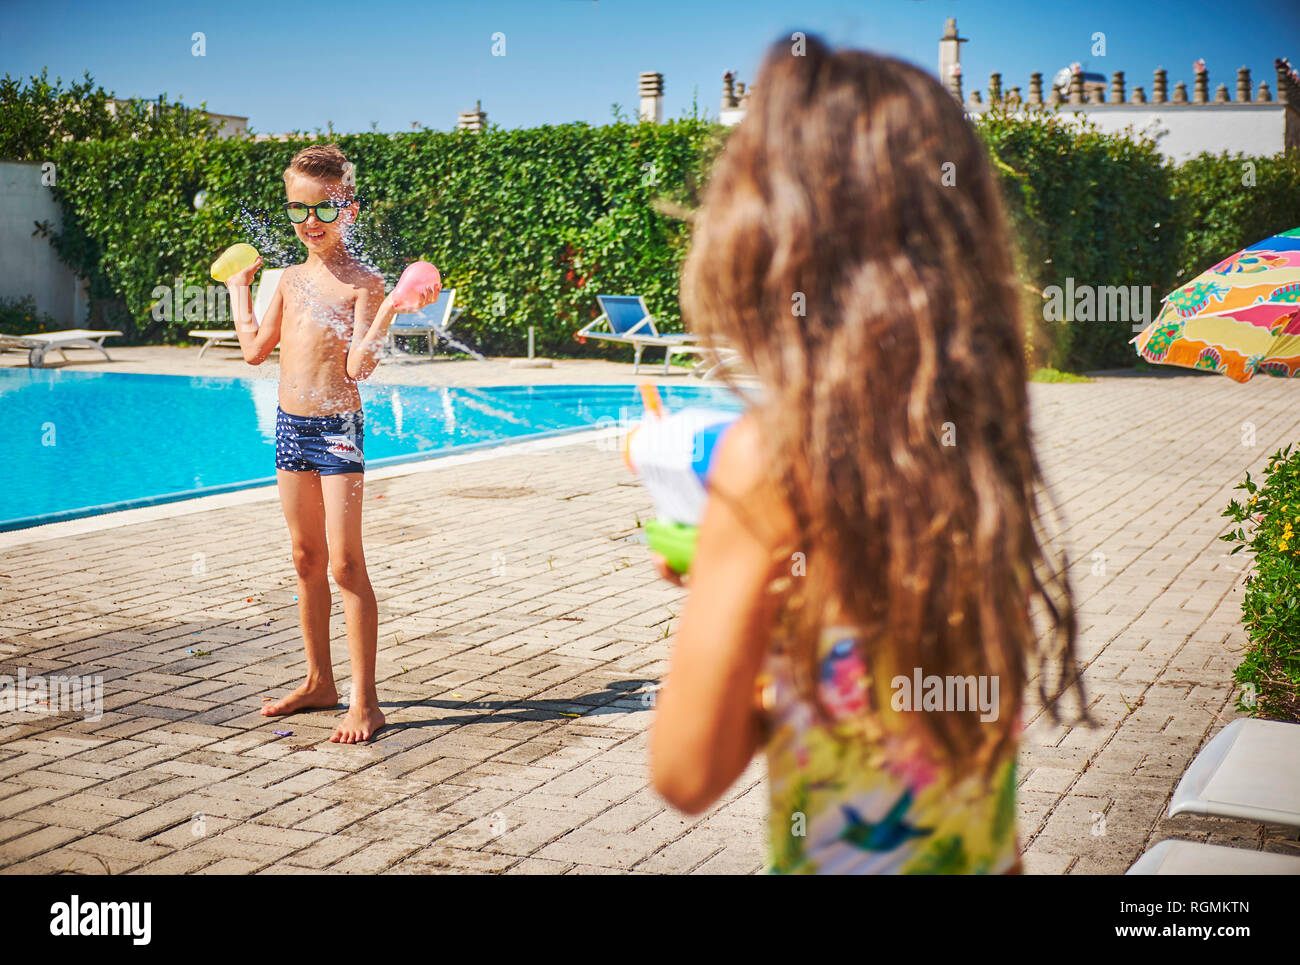 Girl with water gun splashing at boy holding water bombs at the poolside - Stock Image